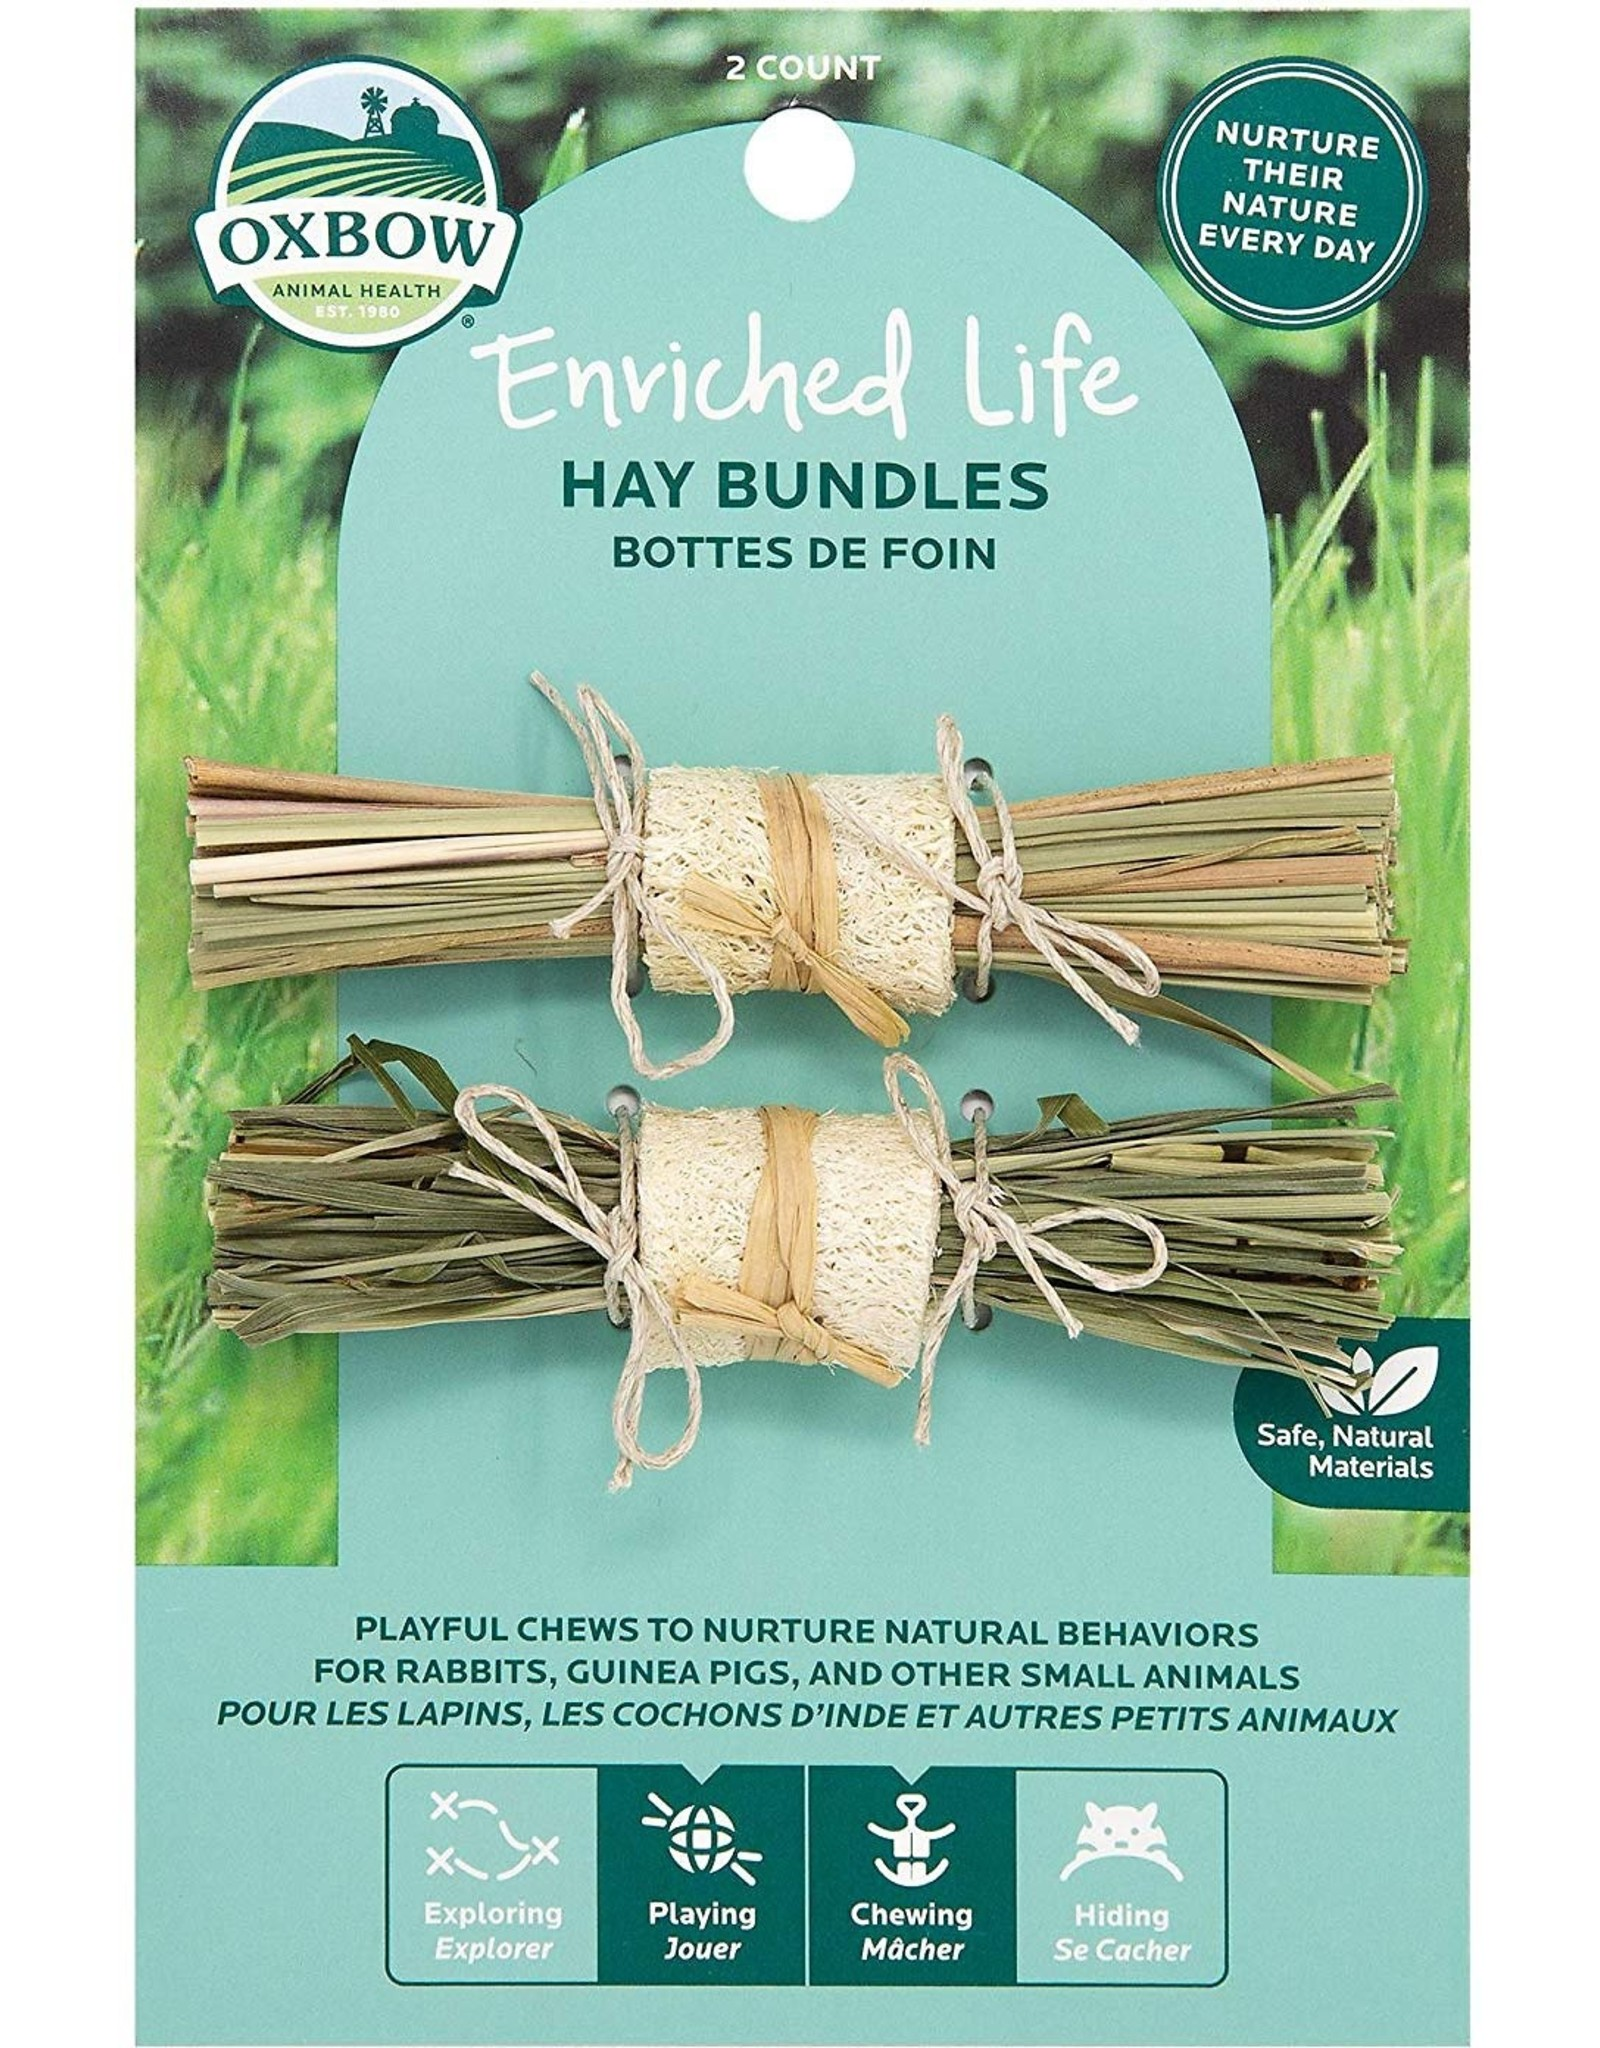 Oxbow Animal Health OXBOW ENRICHED LIFE HAY BUNDLES SMALL ANIMAL TOY 2-COUNT